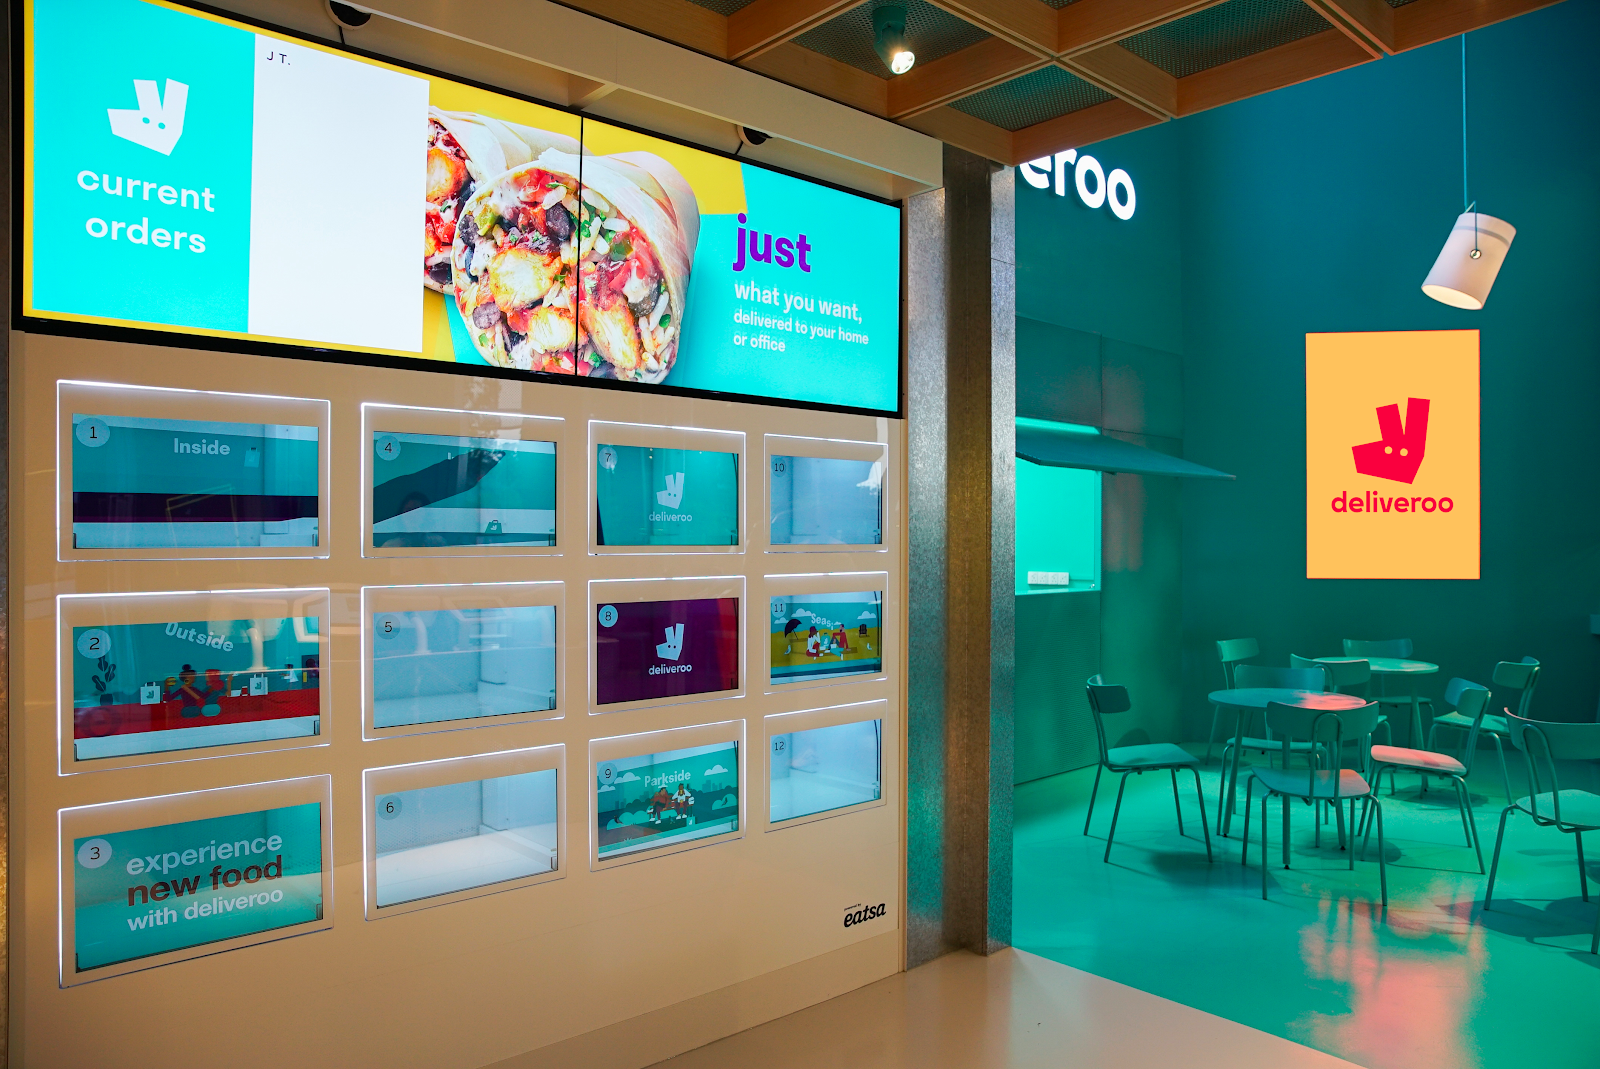 eatsa Announces Product Suite for Growing Virtual Restaurant Industry,  Powers Latest Concept from Deliveroo